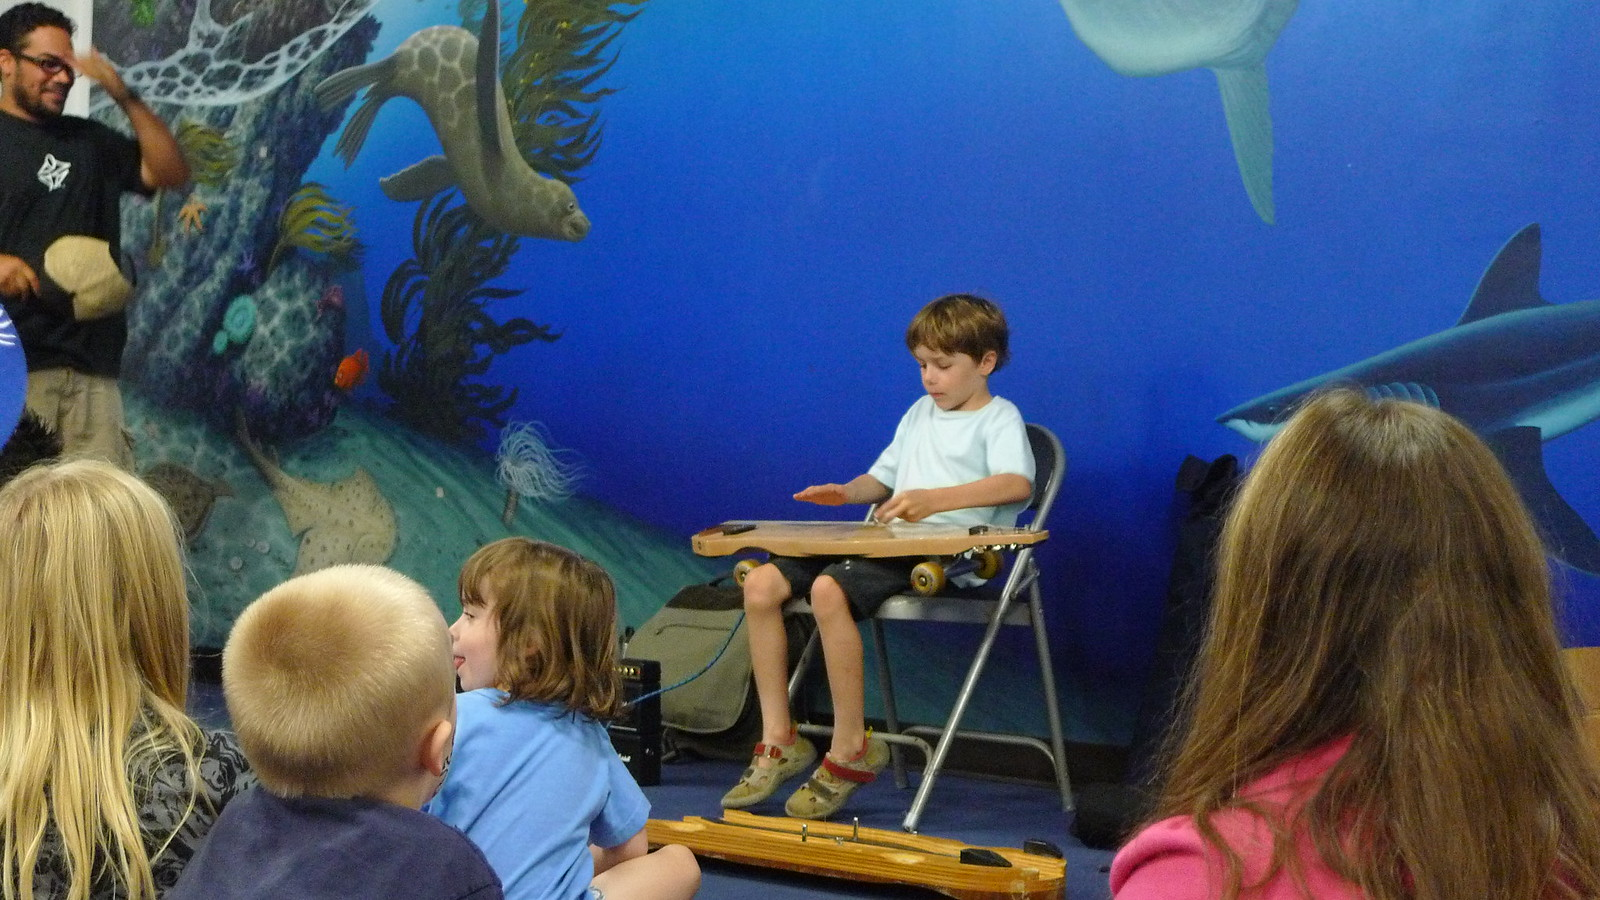 Aquarium guests try playing the skateboard guitar